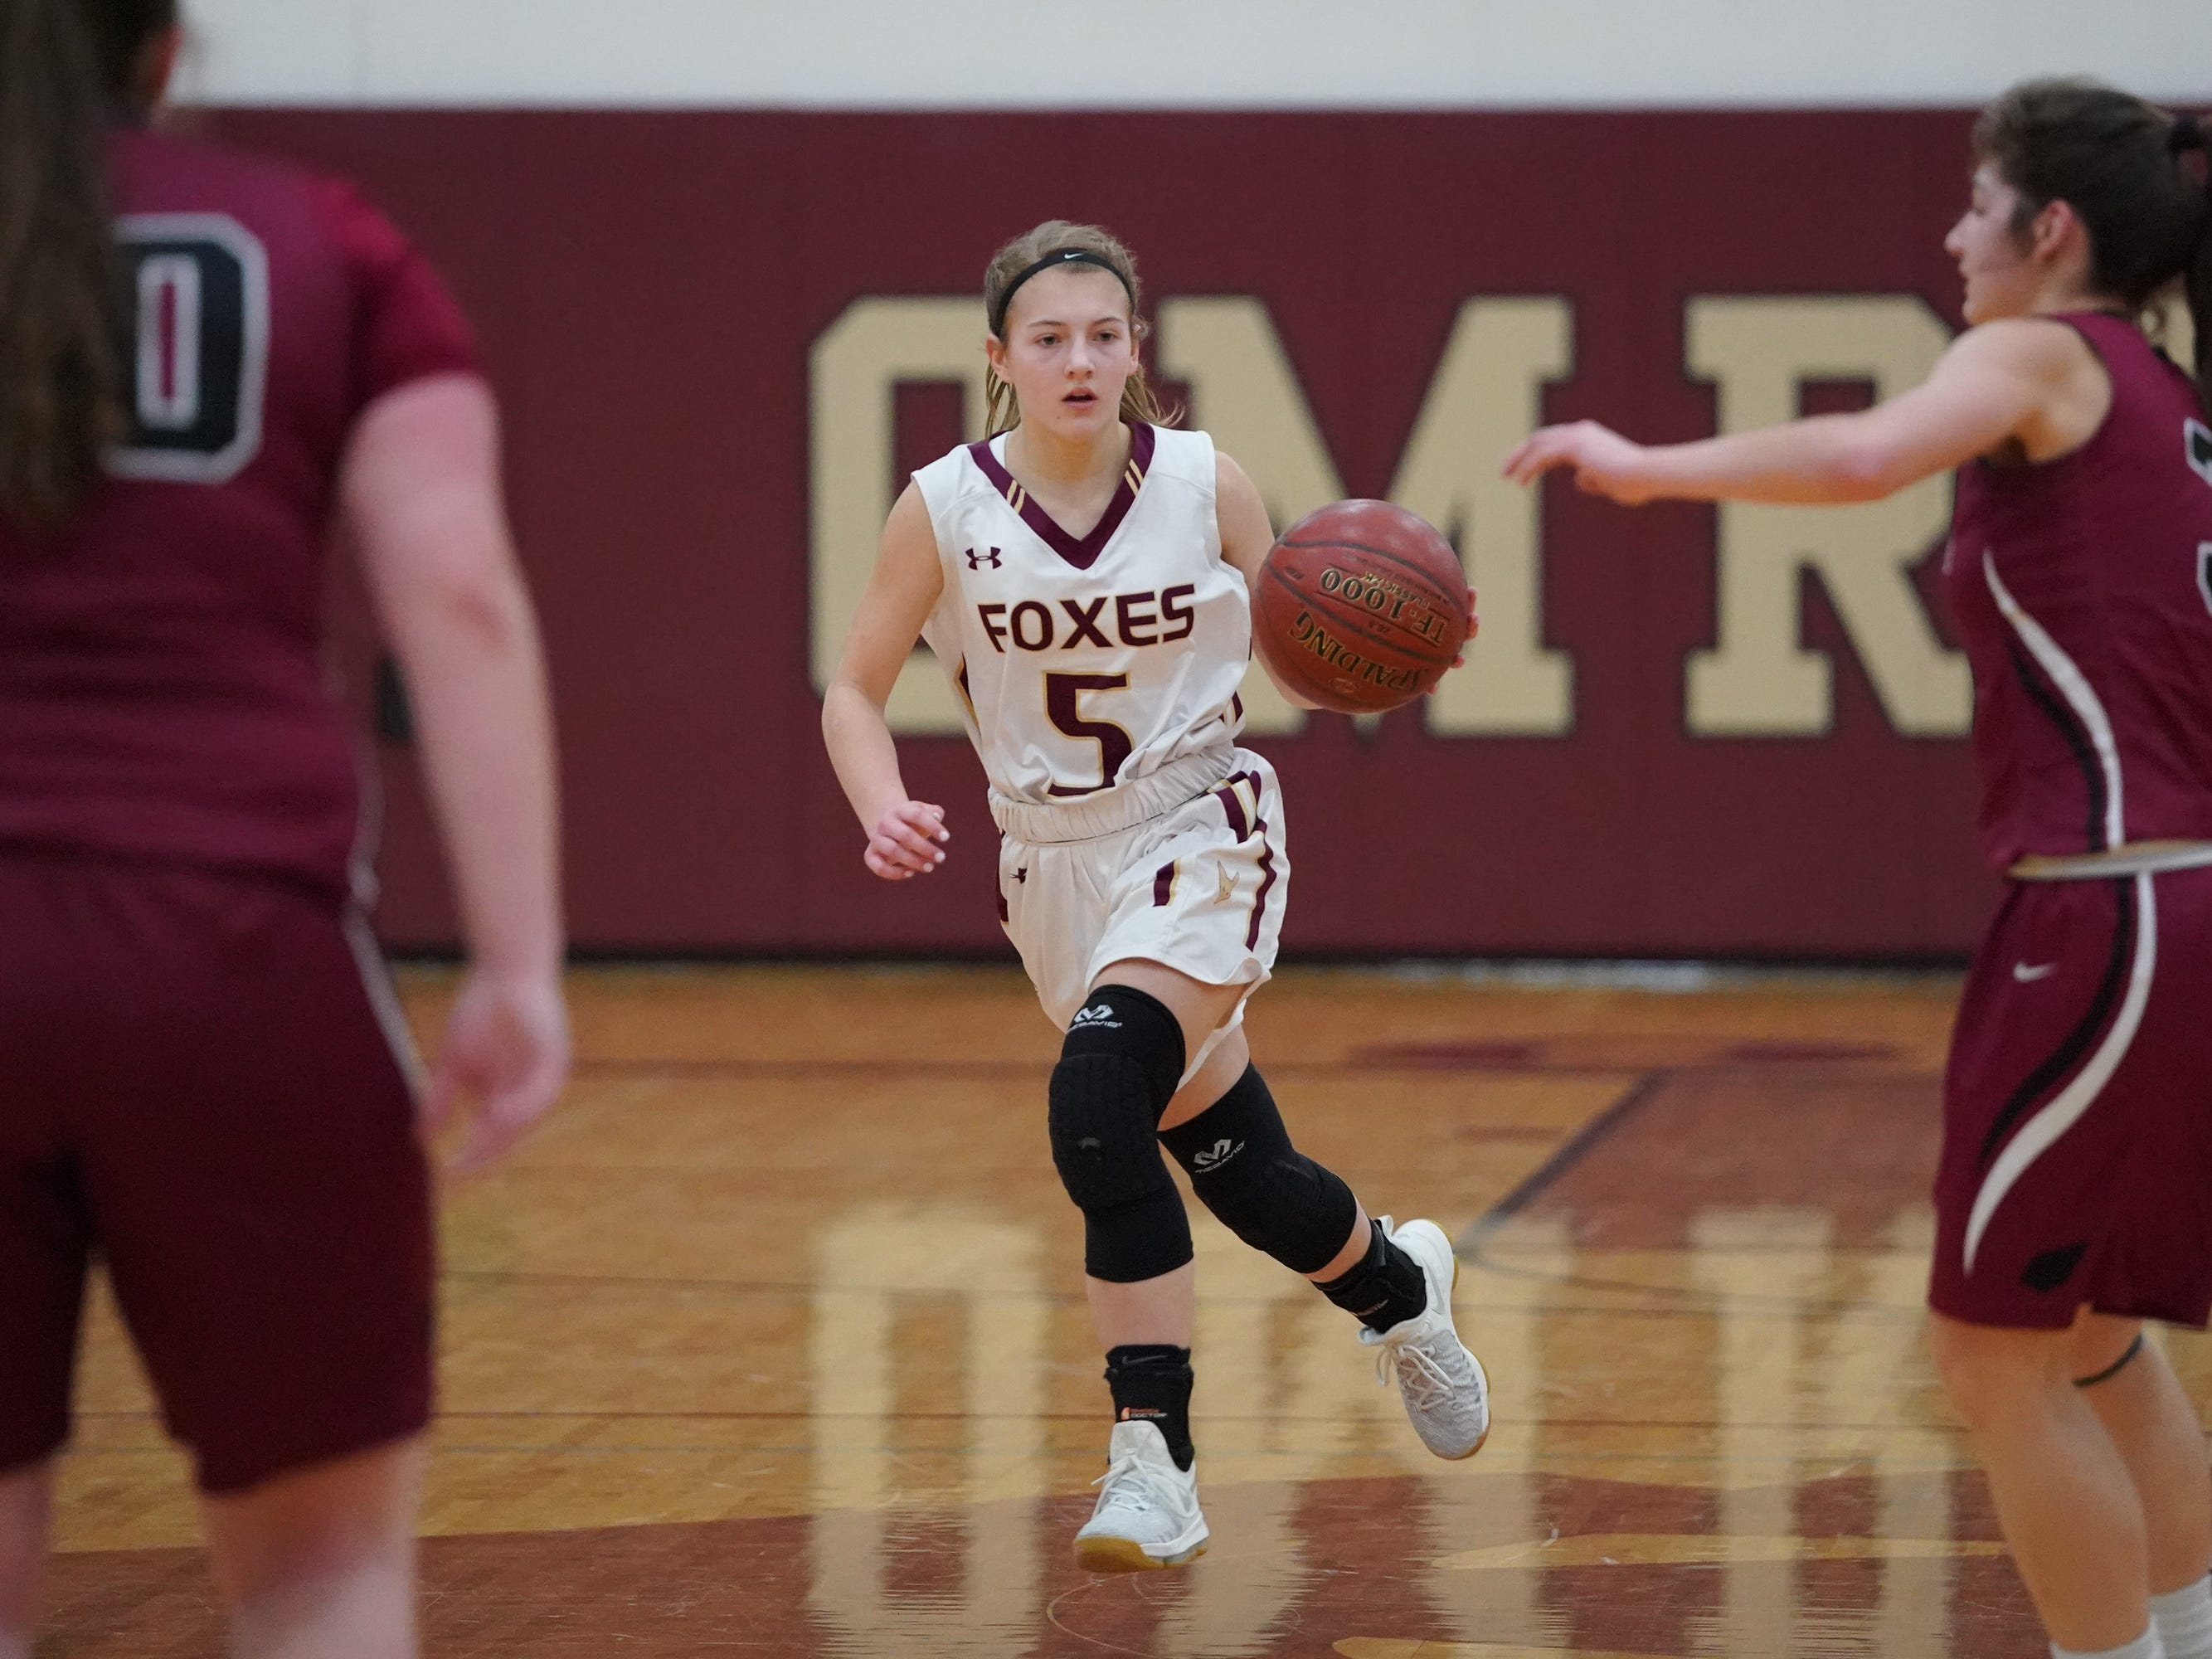 Hannah Fedderly (5) of Omro  brings the ball downcourt. The Omro Foxes hosted the Mayville Cardinals in a Flyway Conference basketball game Friday evening, January 4, 2019.